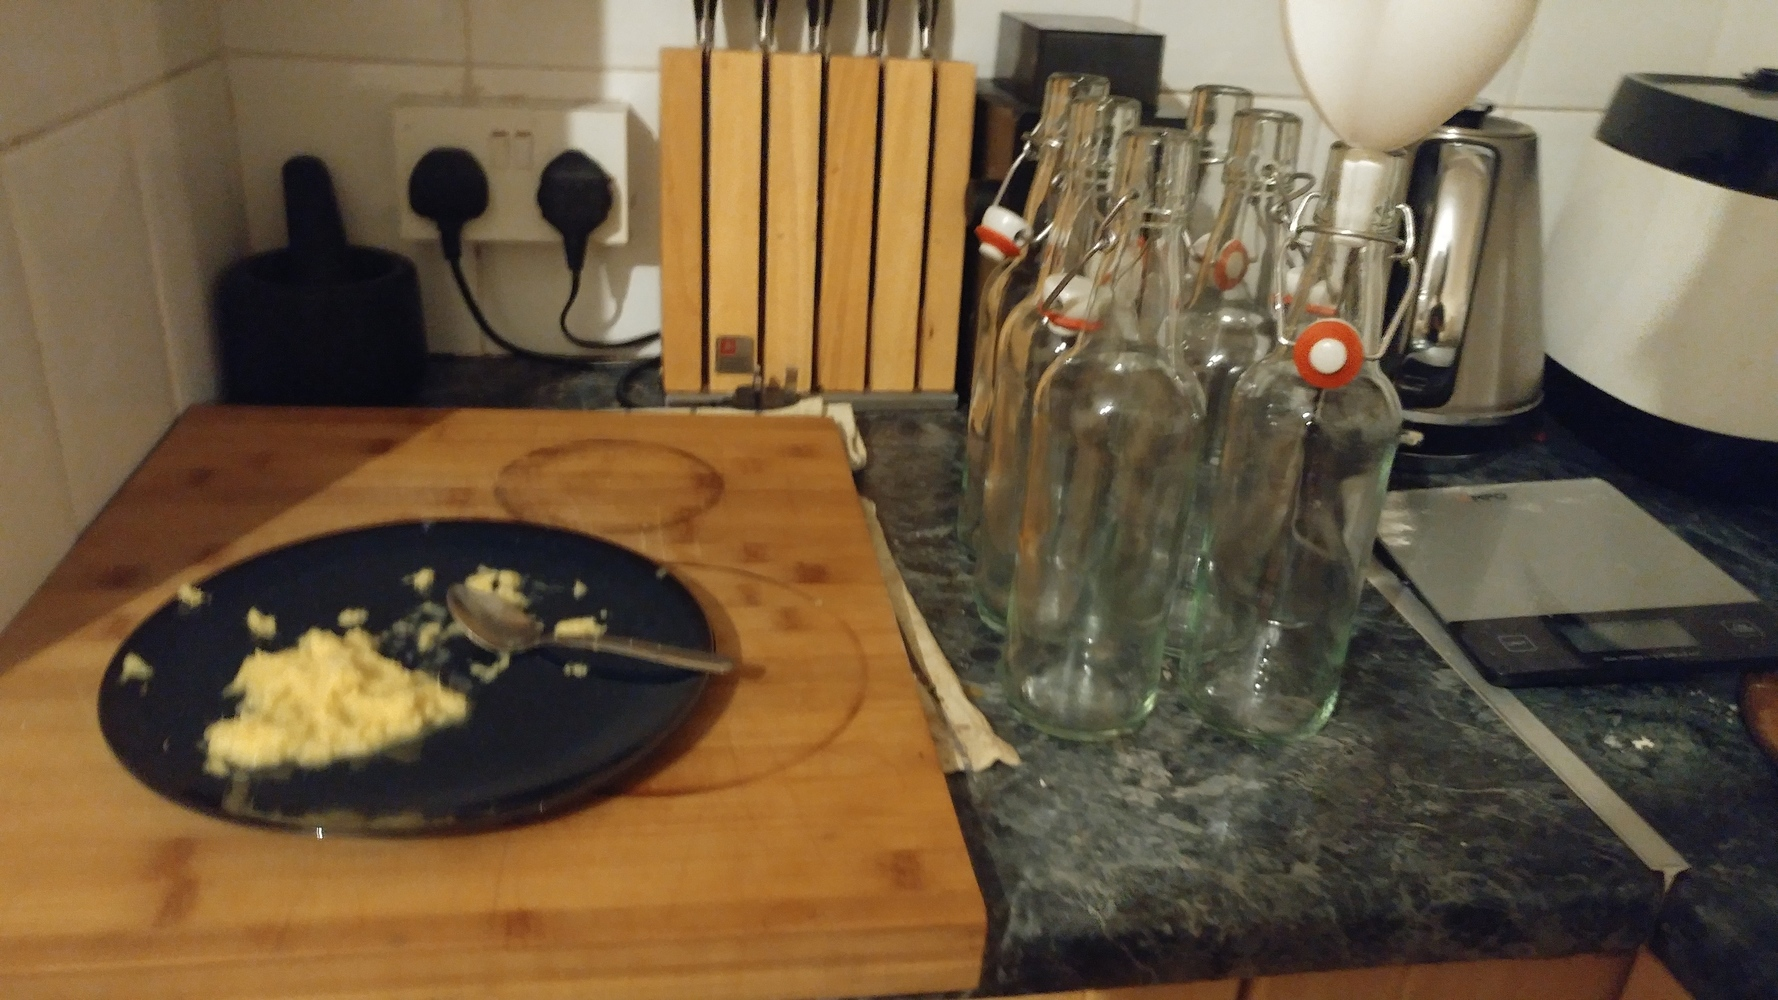 Grated ginger with bottles ready to be filled